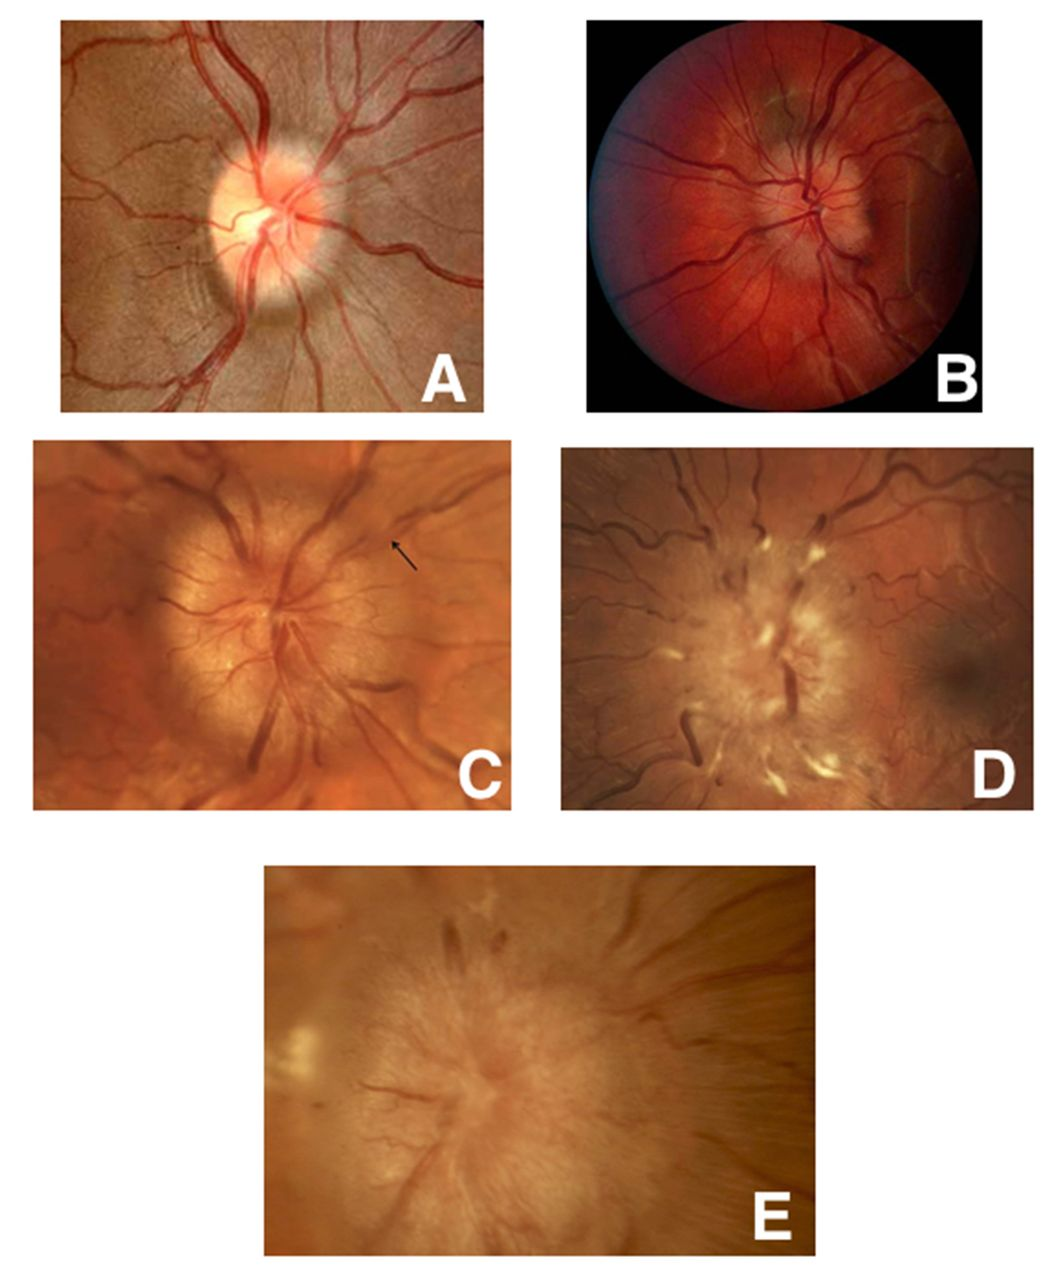 Eyes and stroke: the visual aspects of cerebrovascular